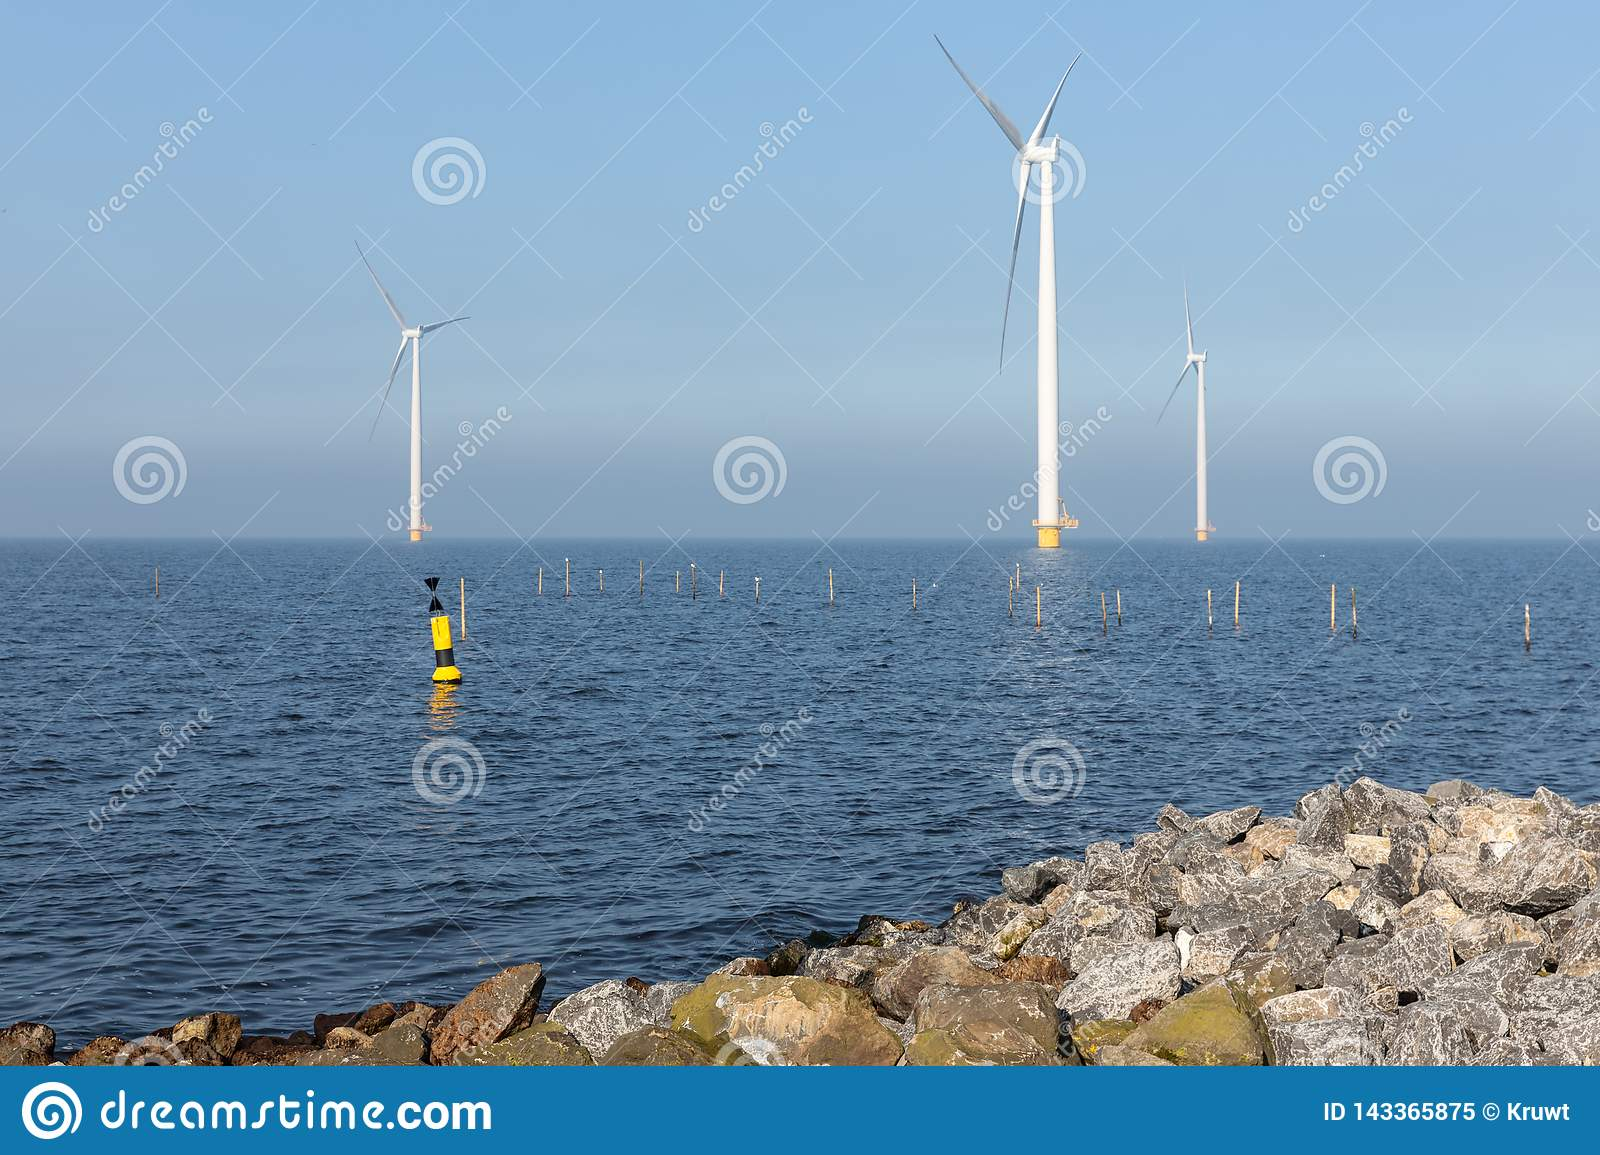 Offshore wind turbines near Dutch coast with buoy